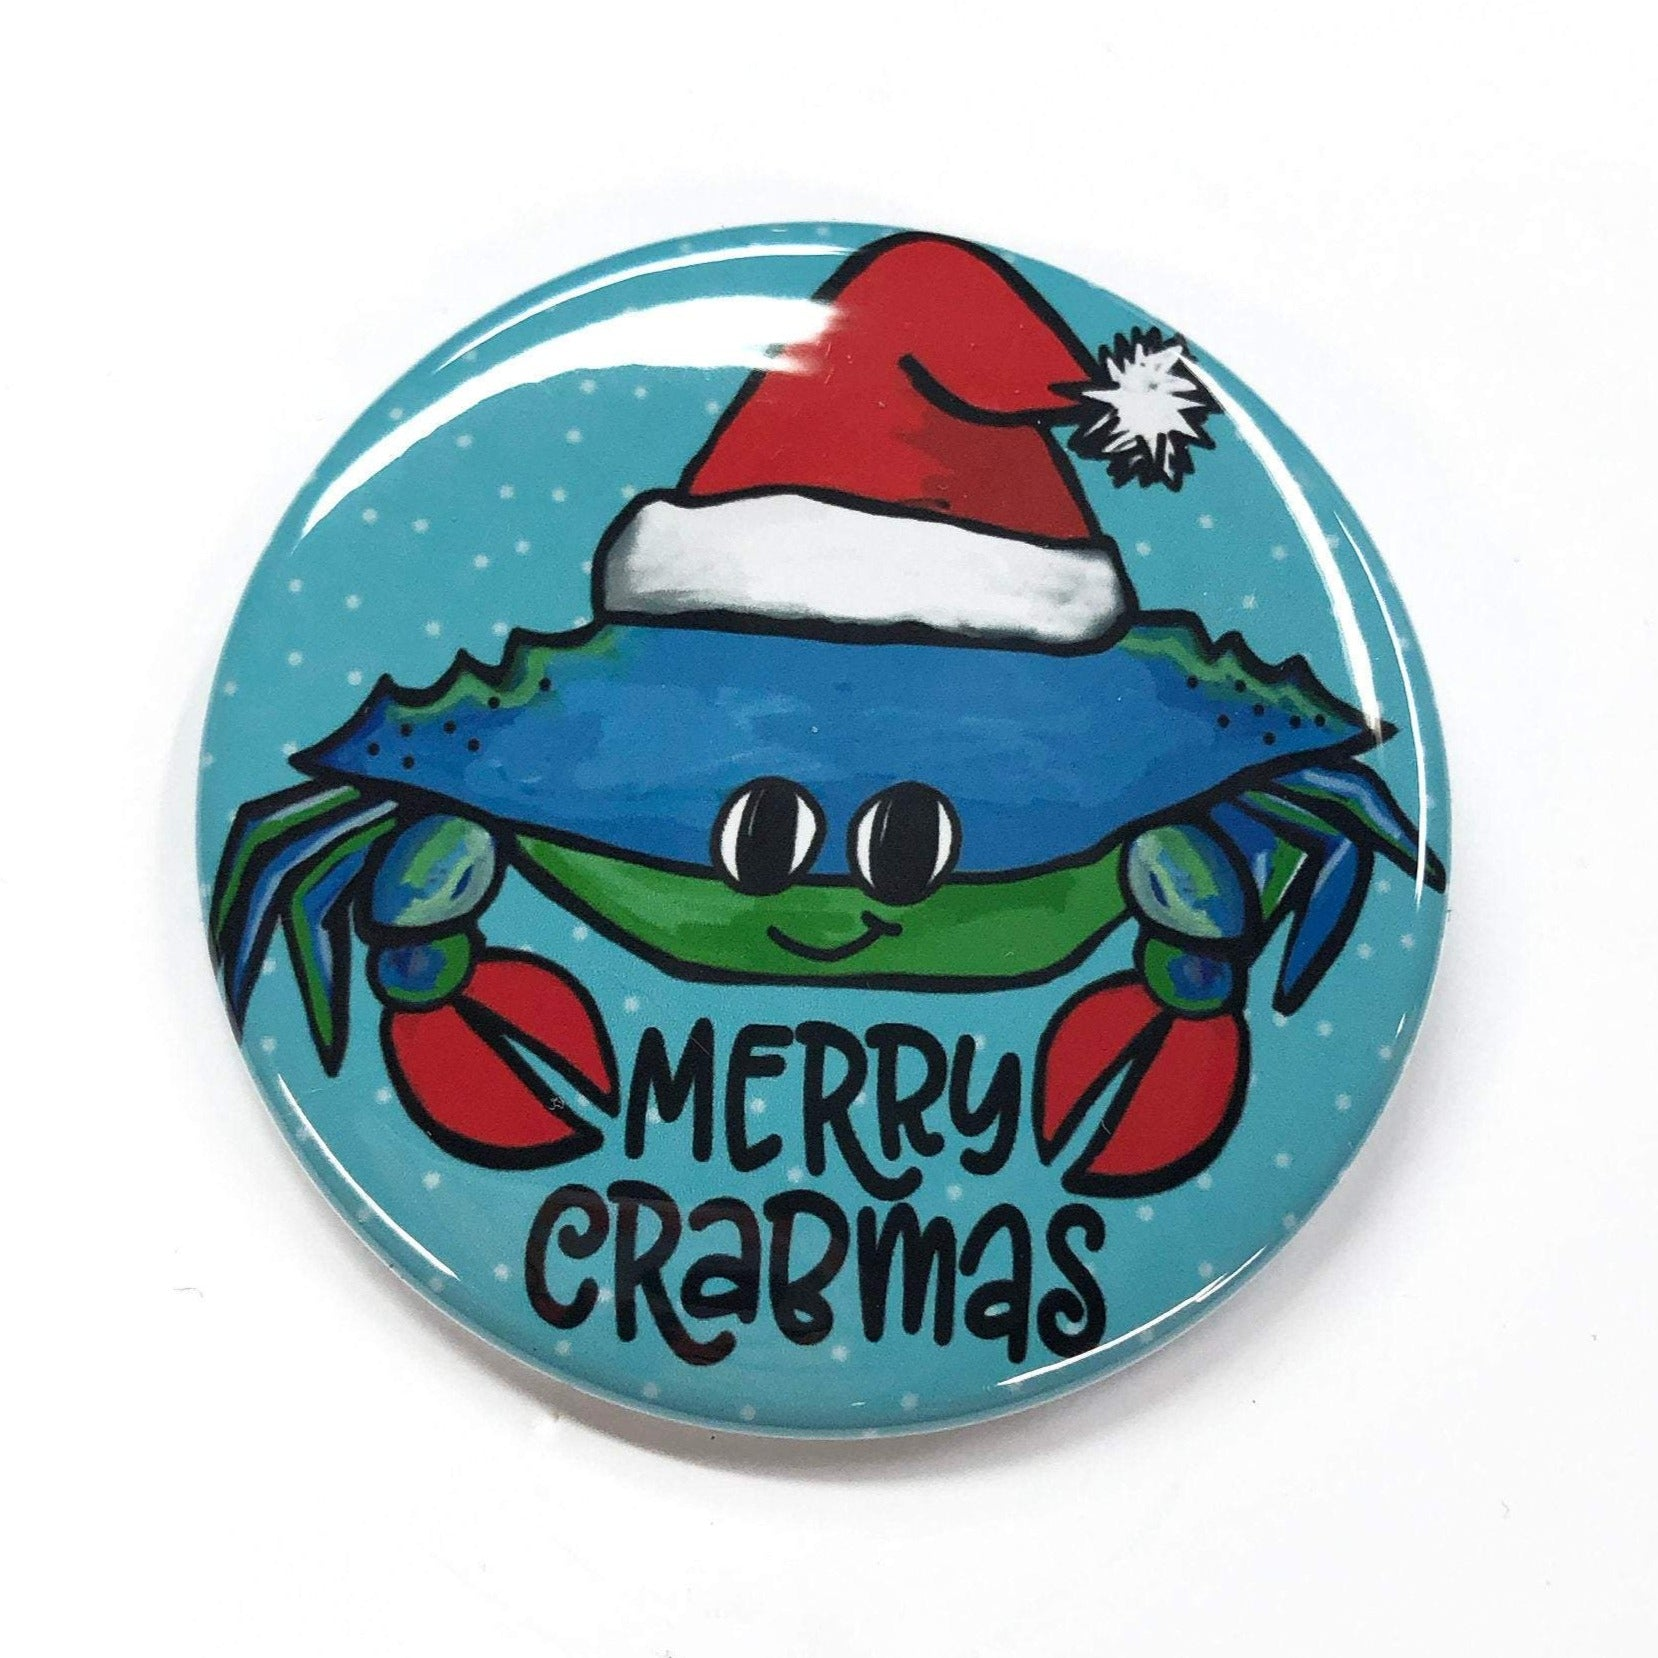 Merry Crabmas Pin Back Button, Magnet, or Pocket Mirror